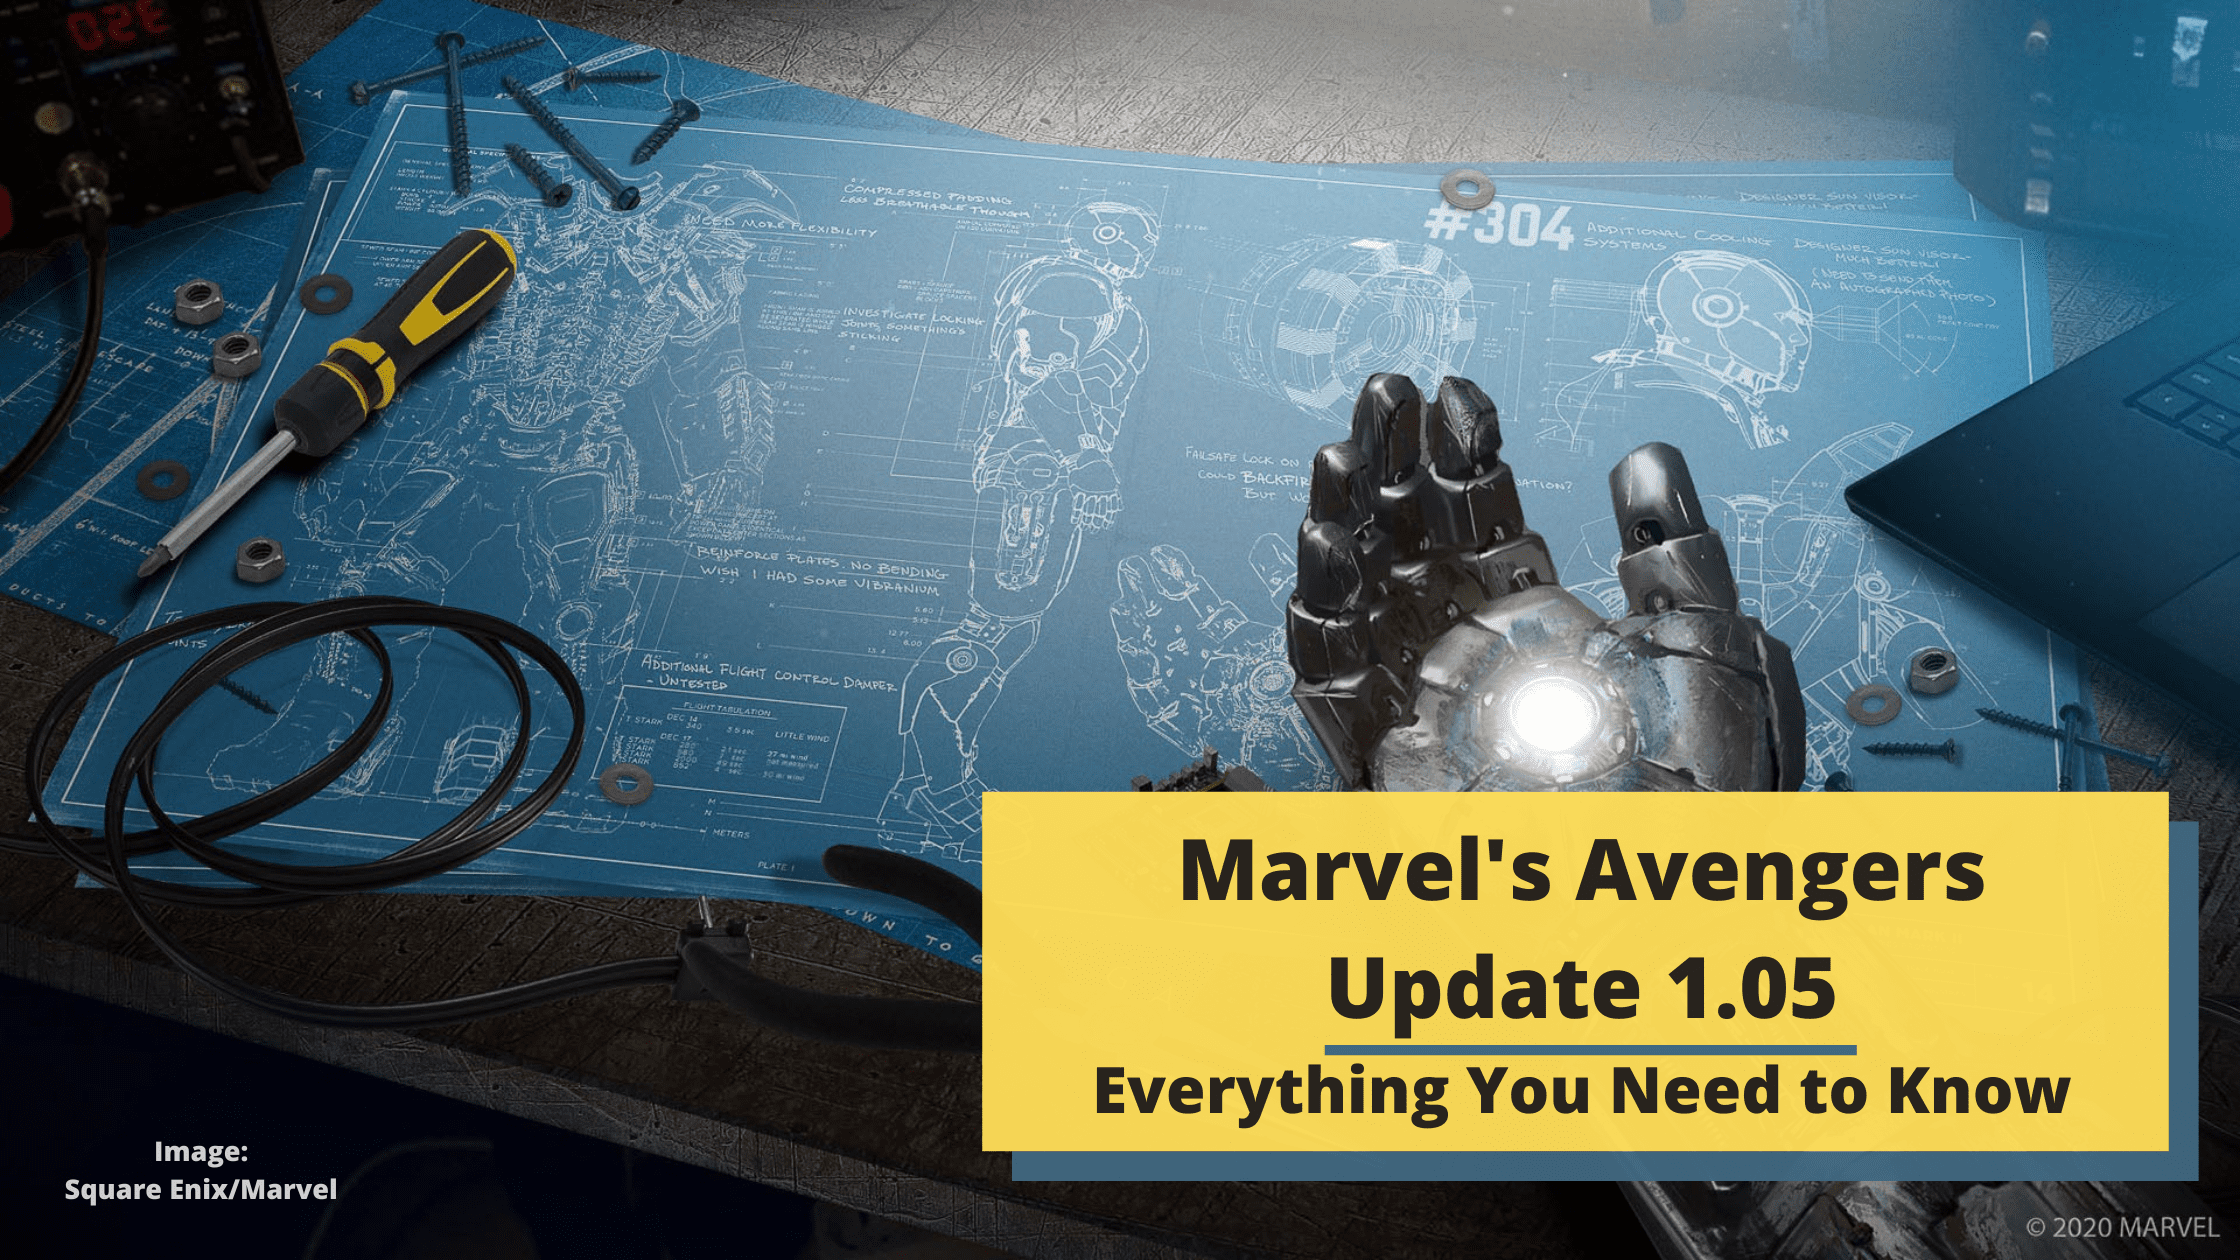 Marvels-Avengers-Update-1.05-Everything-You-Need-to-Know